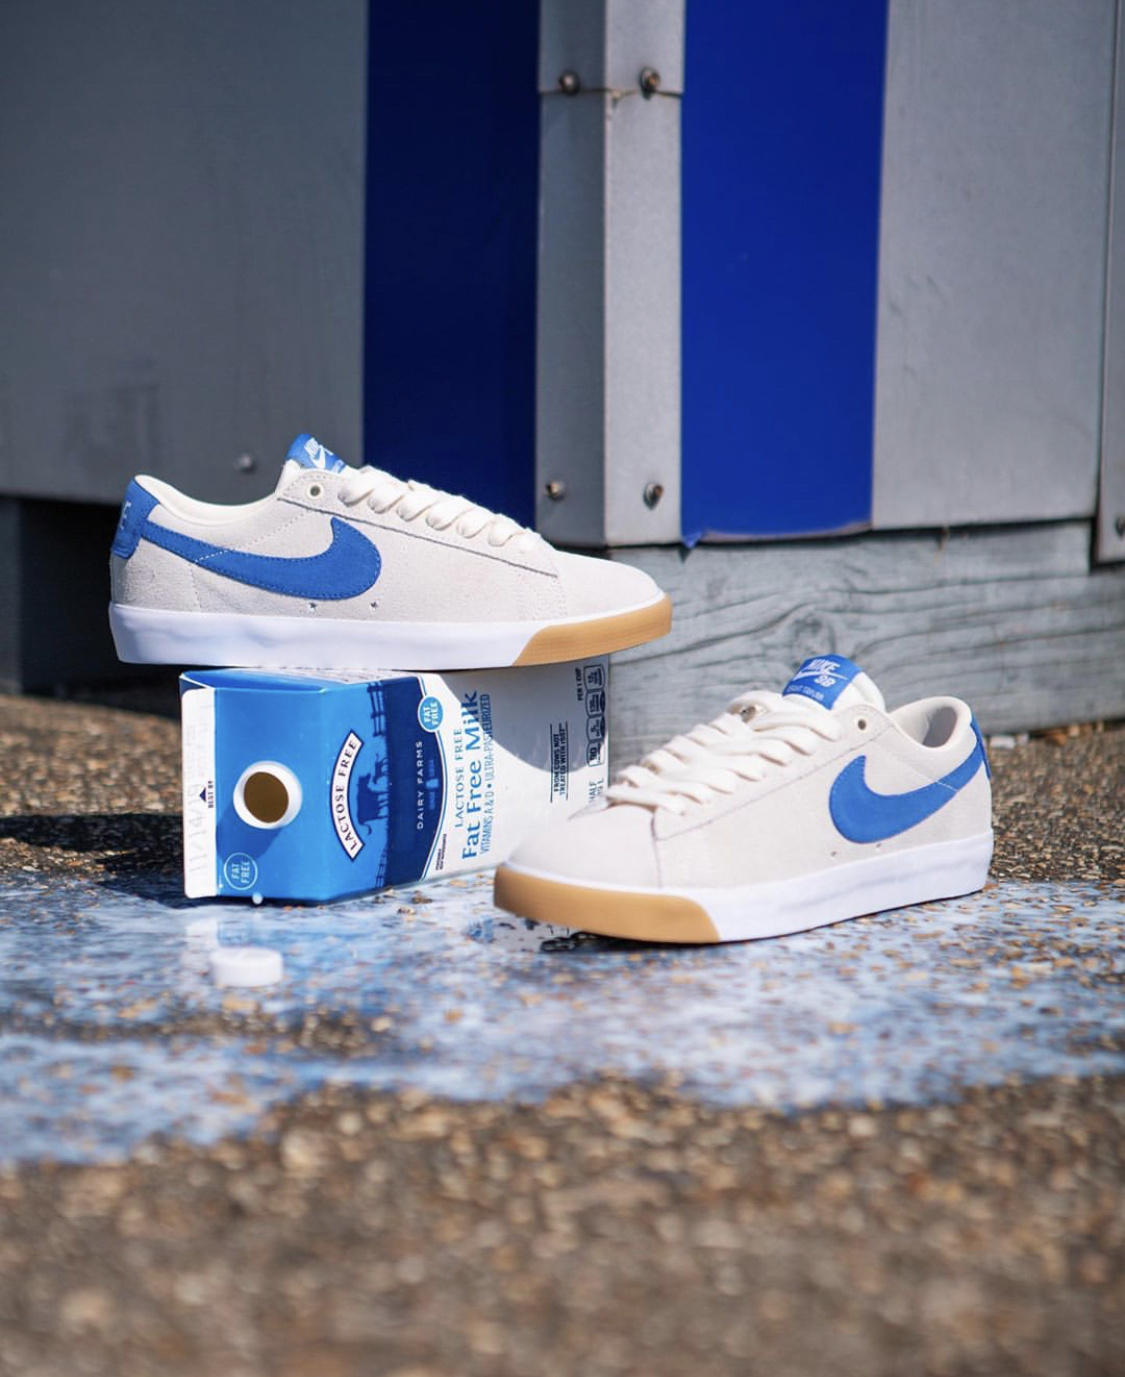 Nike SB Blazer Low 'Milk Carton'